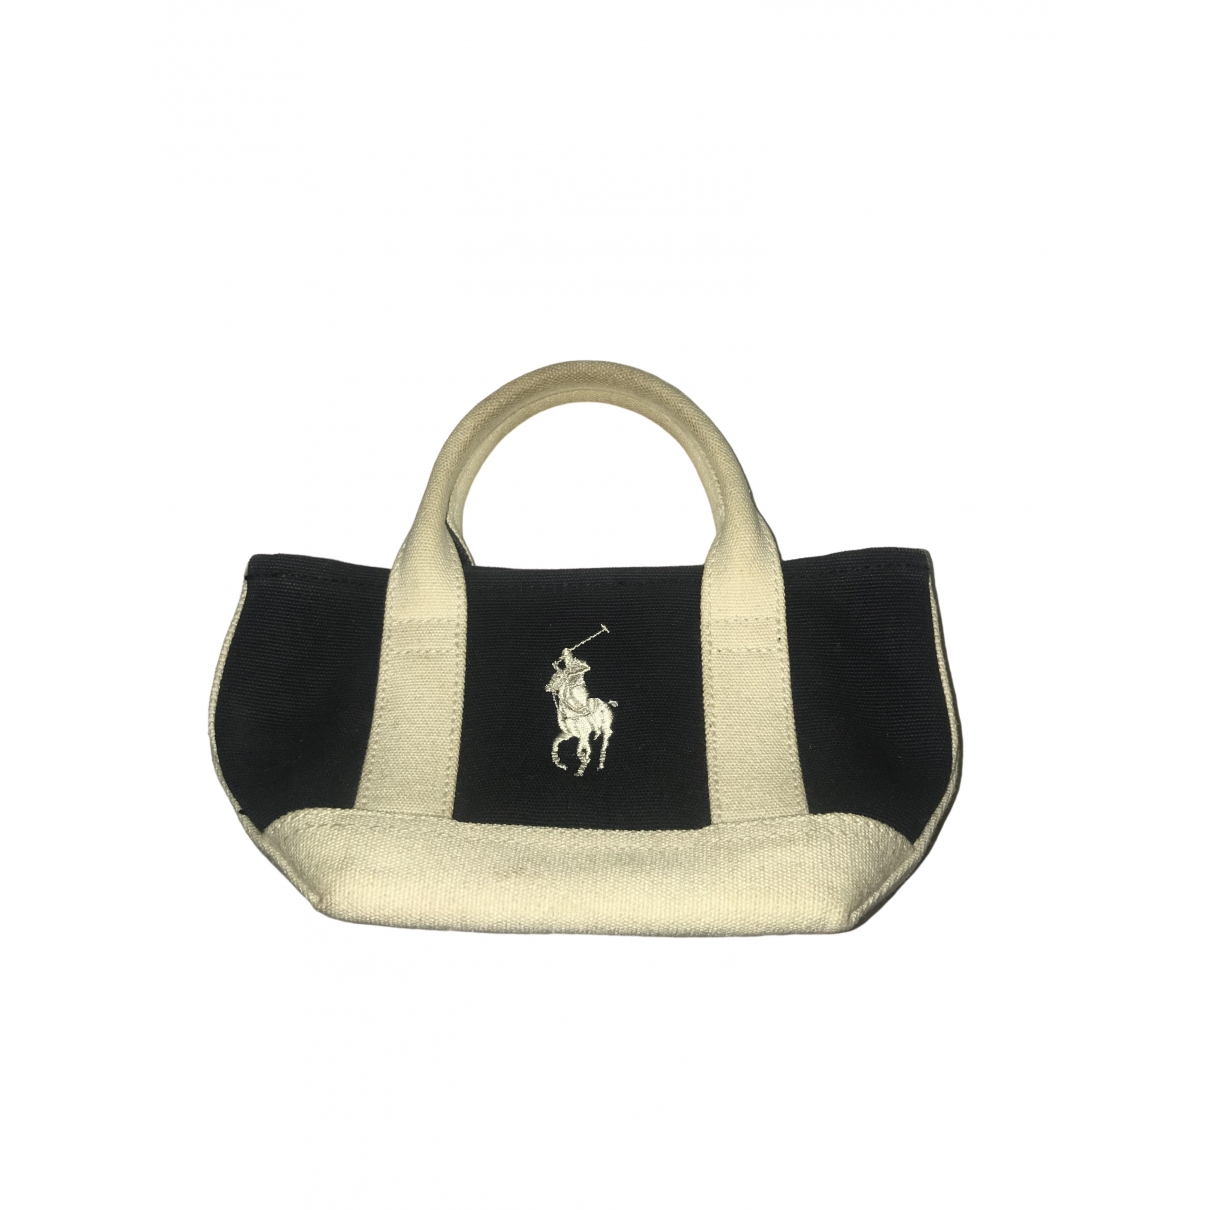 Ralph Lauren \N Blue Cotton handbag for Women \N